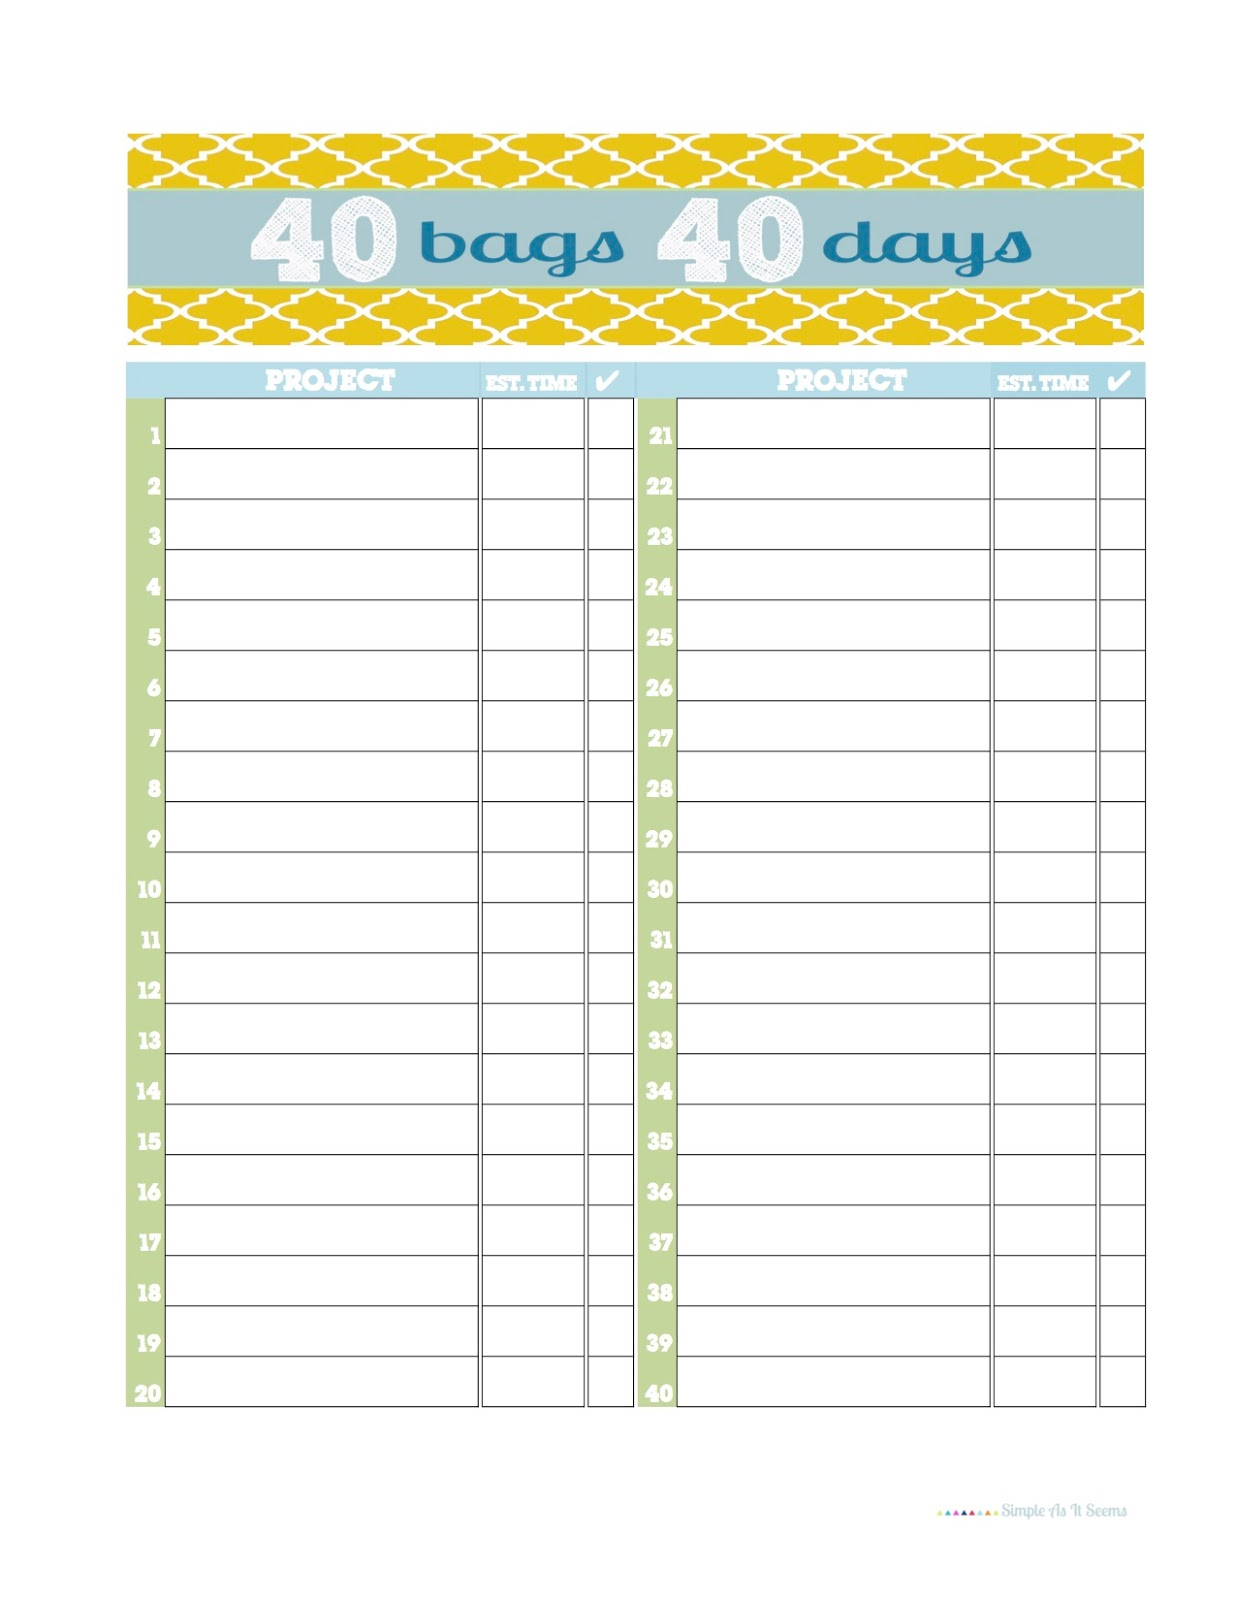 This is an image of Juicy 40 Bags in 40 Days Printable